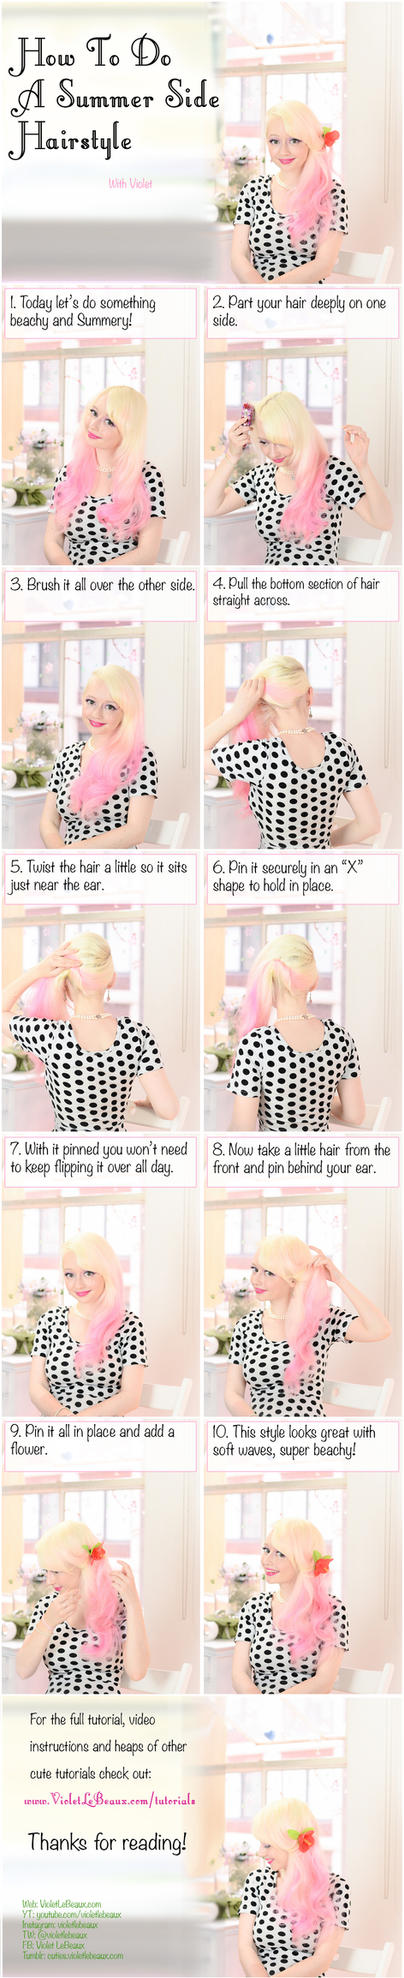 Sideswept Beach Hairstyle Tutorial by VioletLeBeaux